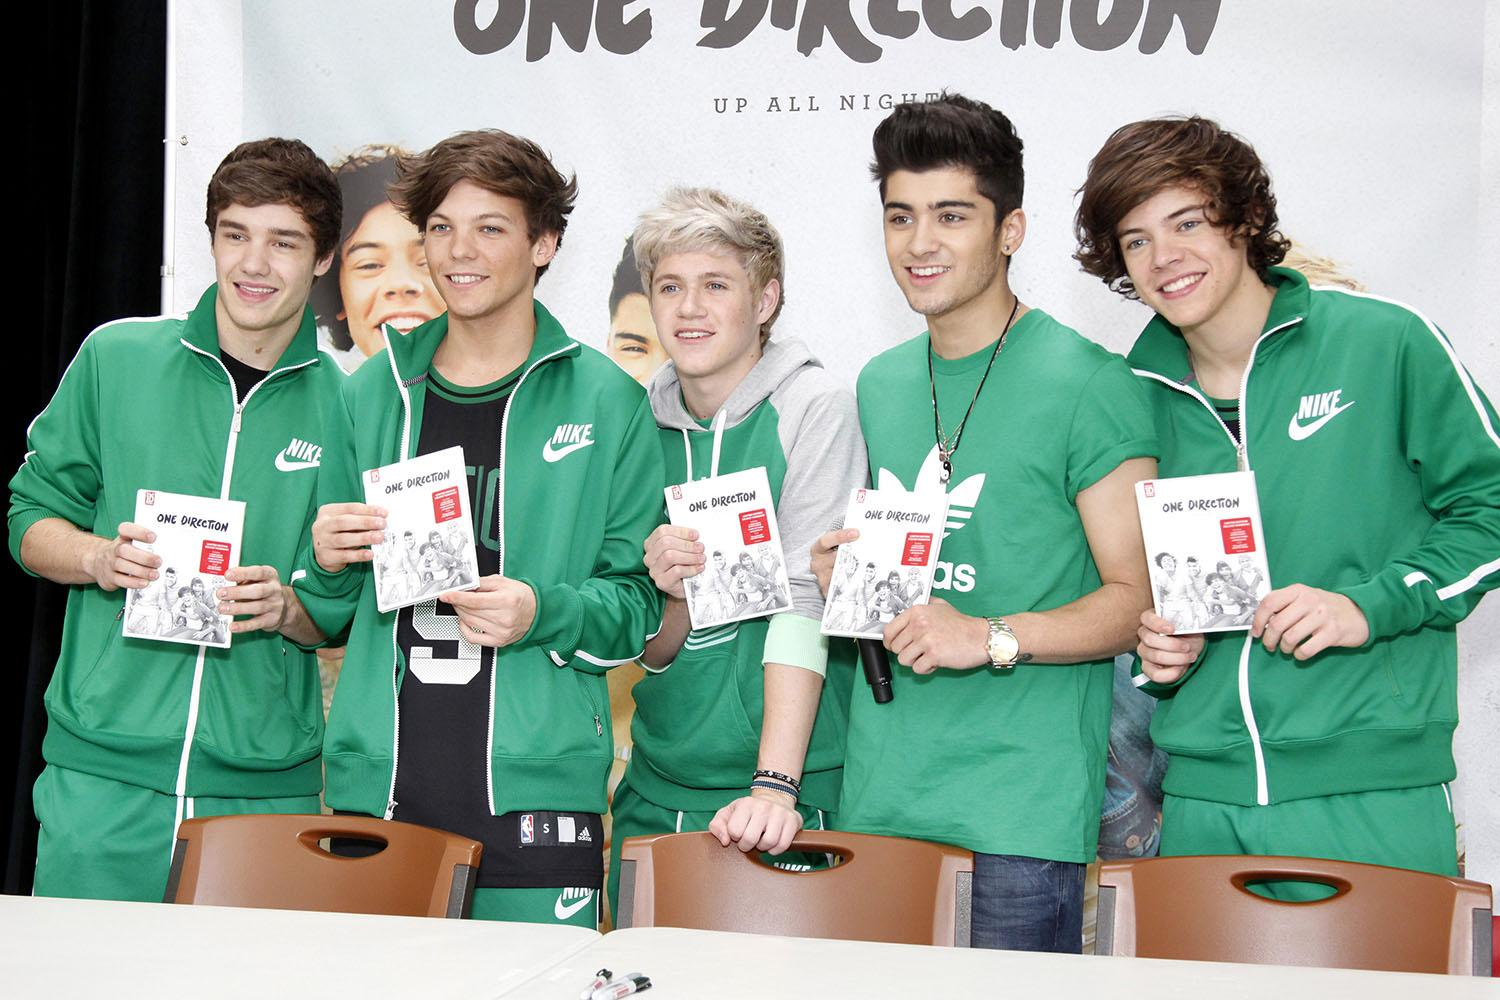 One direction and dating fan service